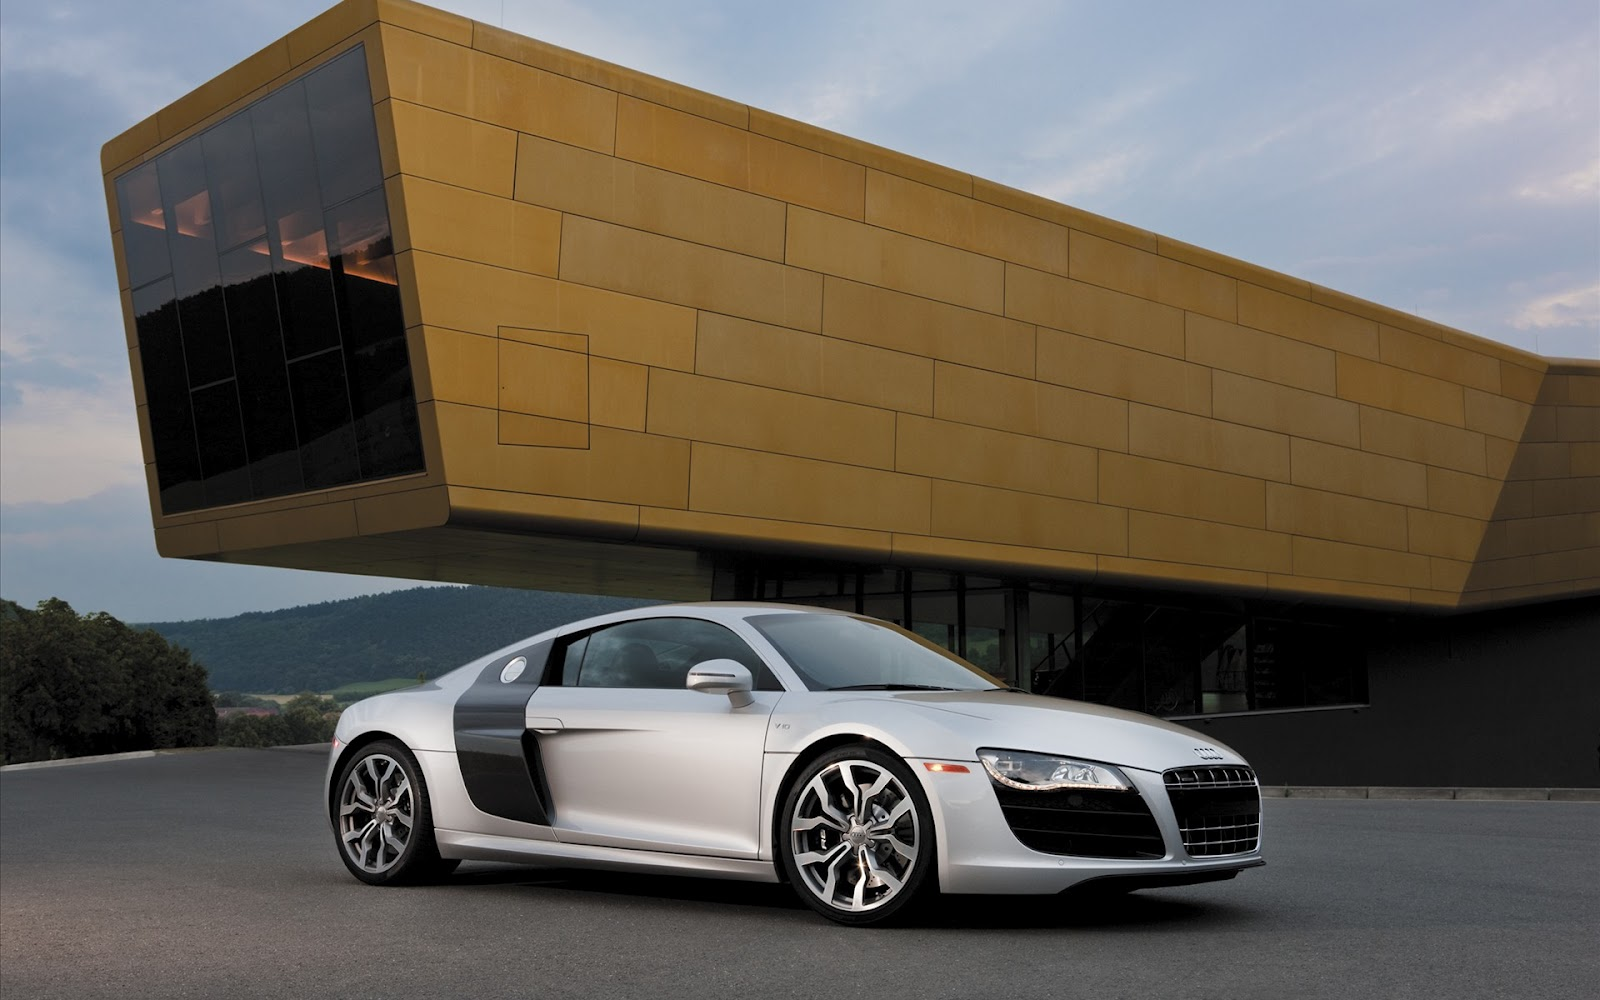 audi r8 v10 wallpaper Pictures Of Cars Hd 1600x1000